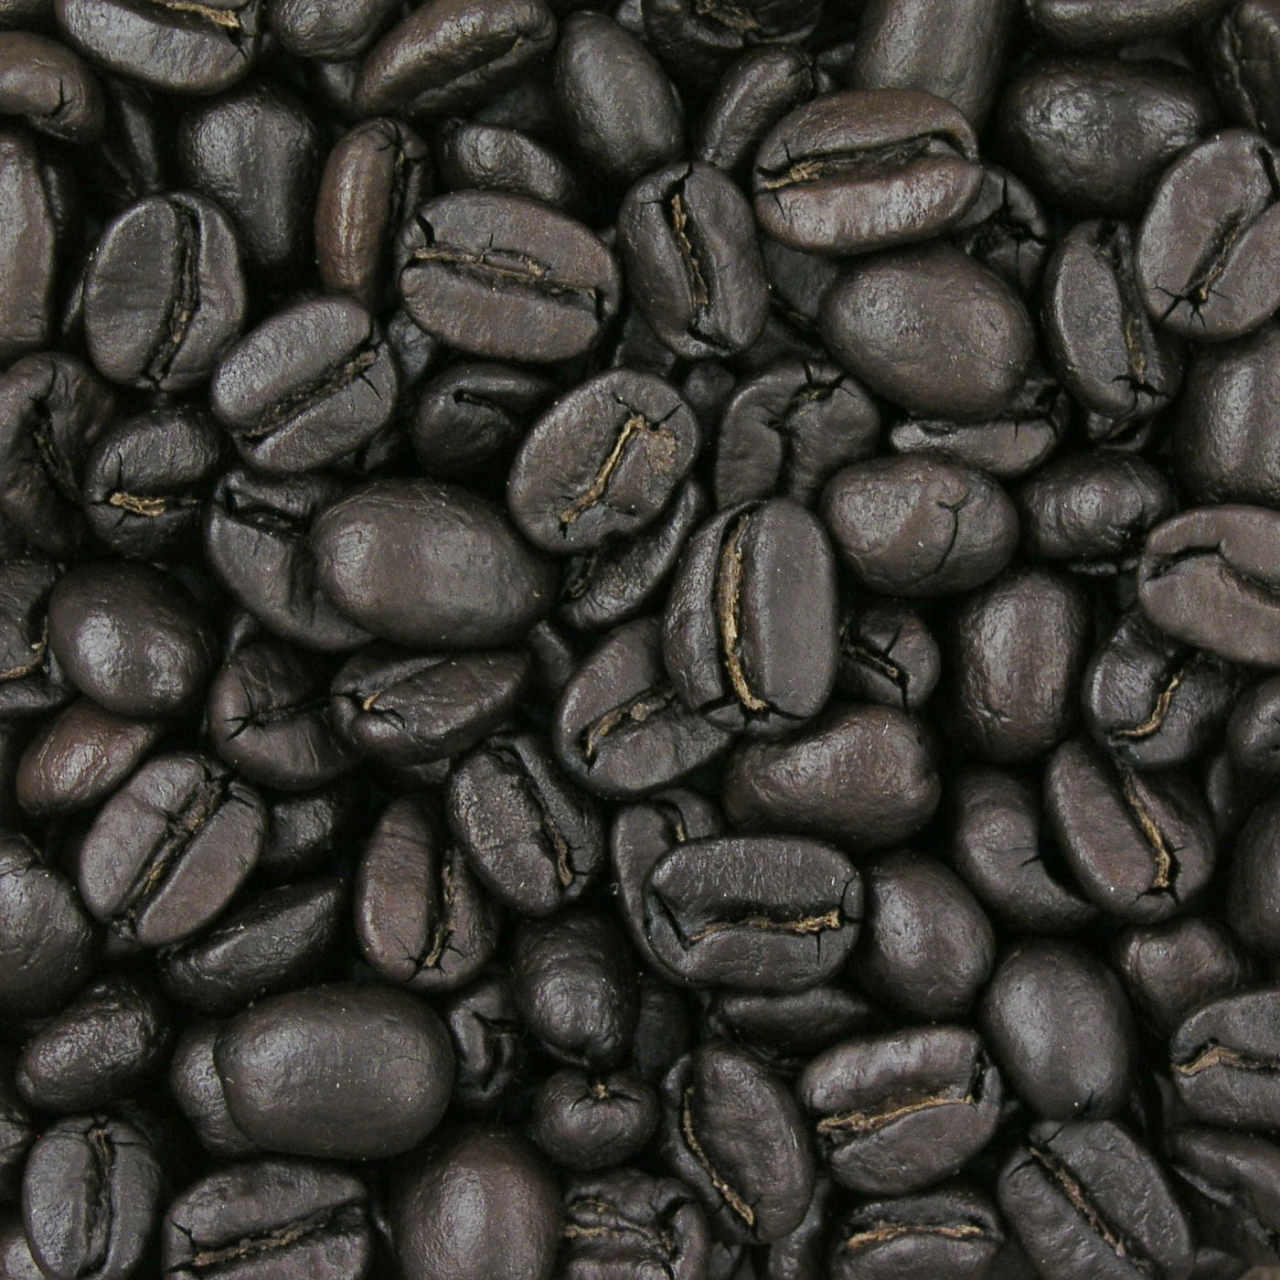 240 °C (464 °F) French Roast Dark brown, shiny with oil, burnt undertones, acidity diminished. At the end of second crack. A popular roast for espresso blends.